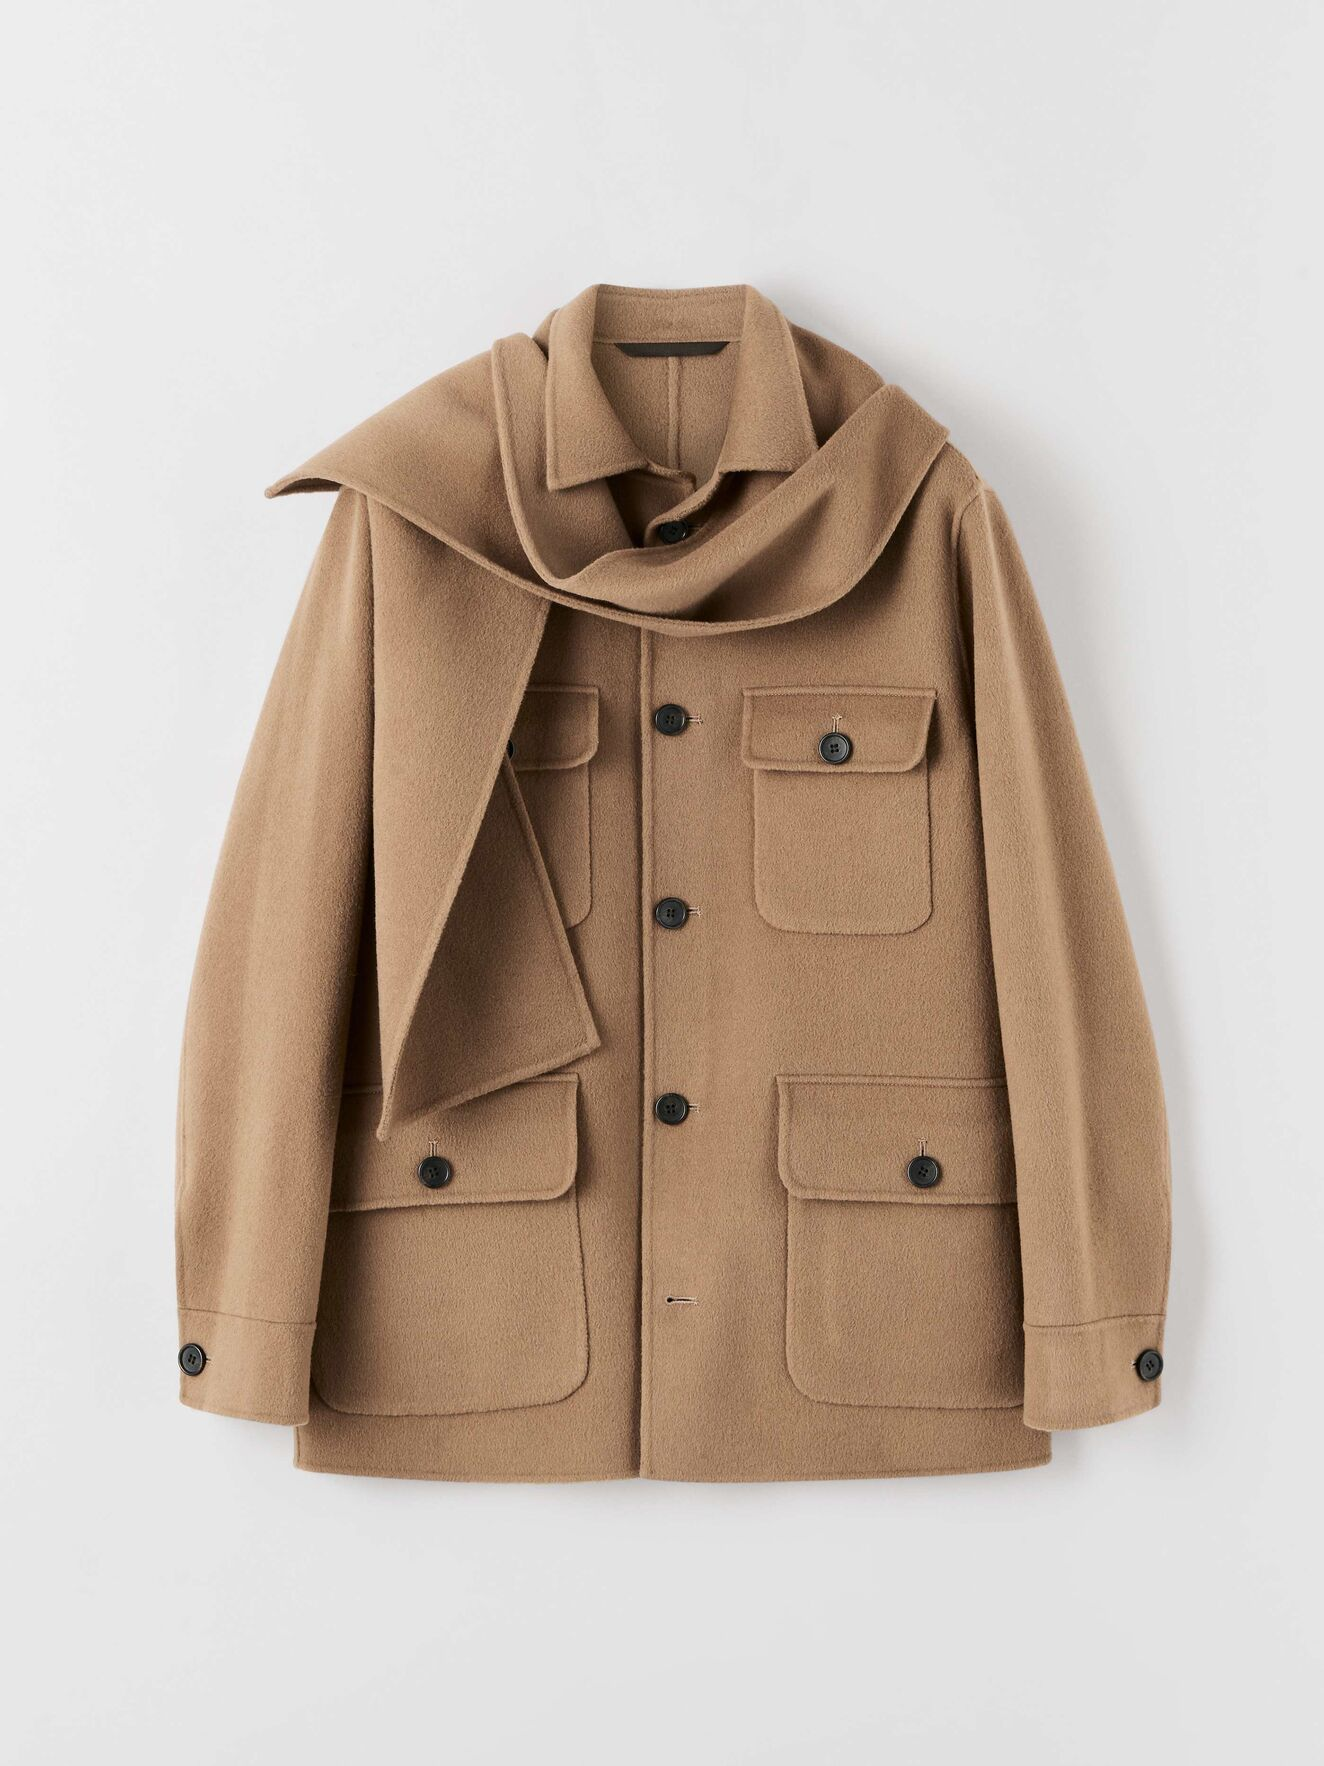 Tiger of Sweden jacket - £849 - It's a jacket with a detachable scarf, so it makes it worth the money doesn't it?